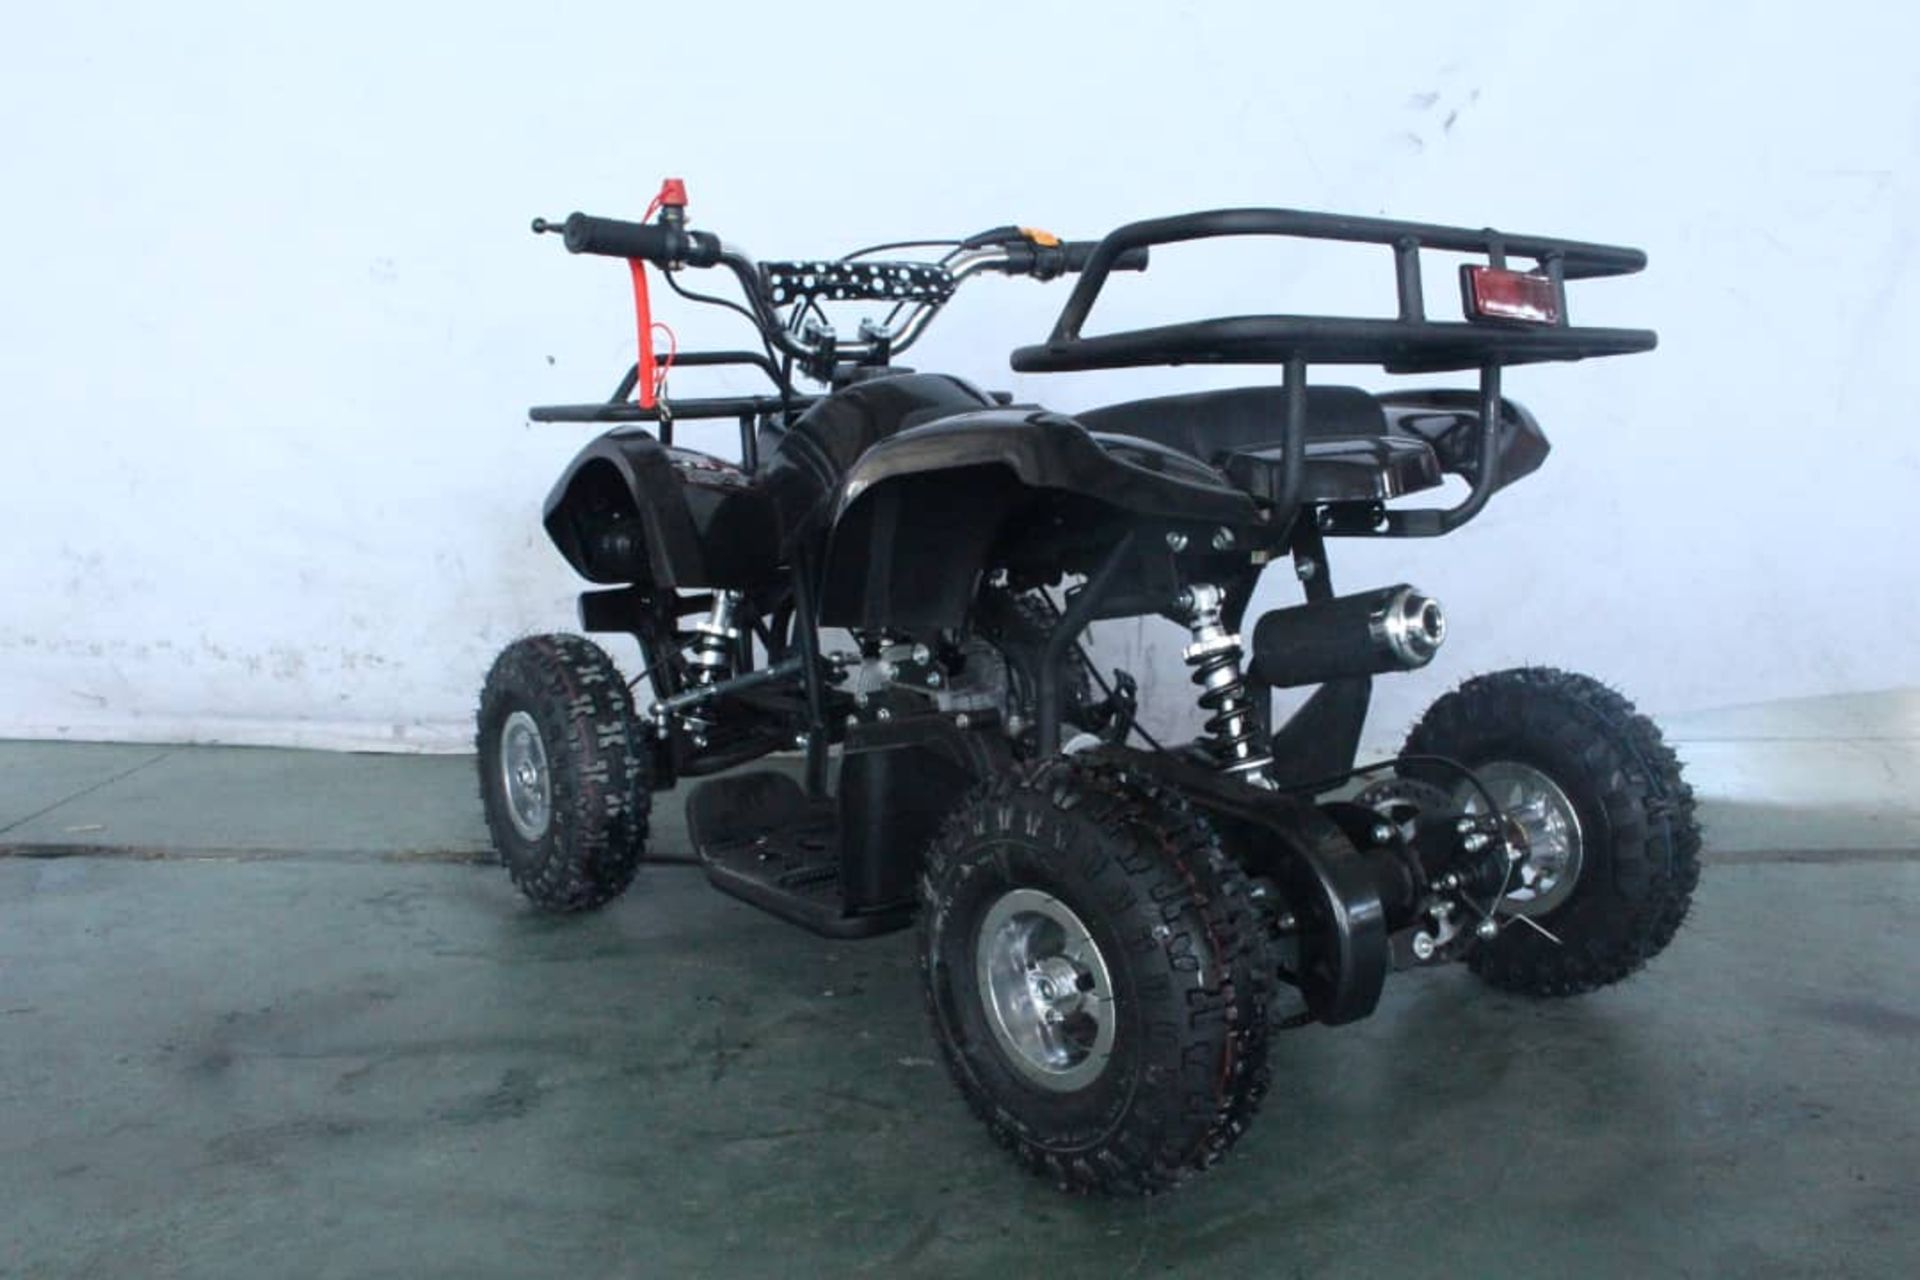 + VAT Brand New 49cc Hawk Mini Quad Bike - Colours May Vary - Full Front And Rear Suspension - Disk - Image 4 of 9